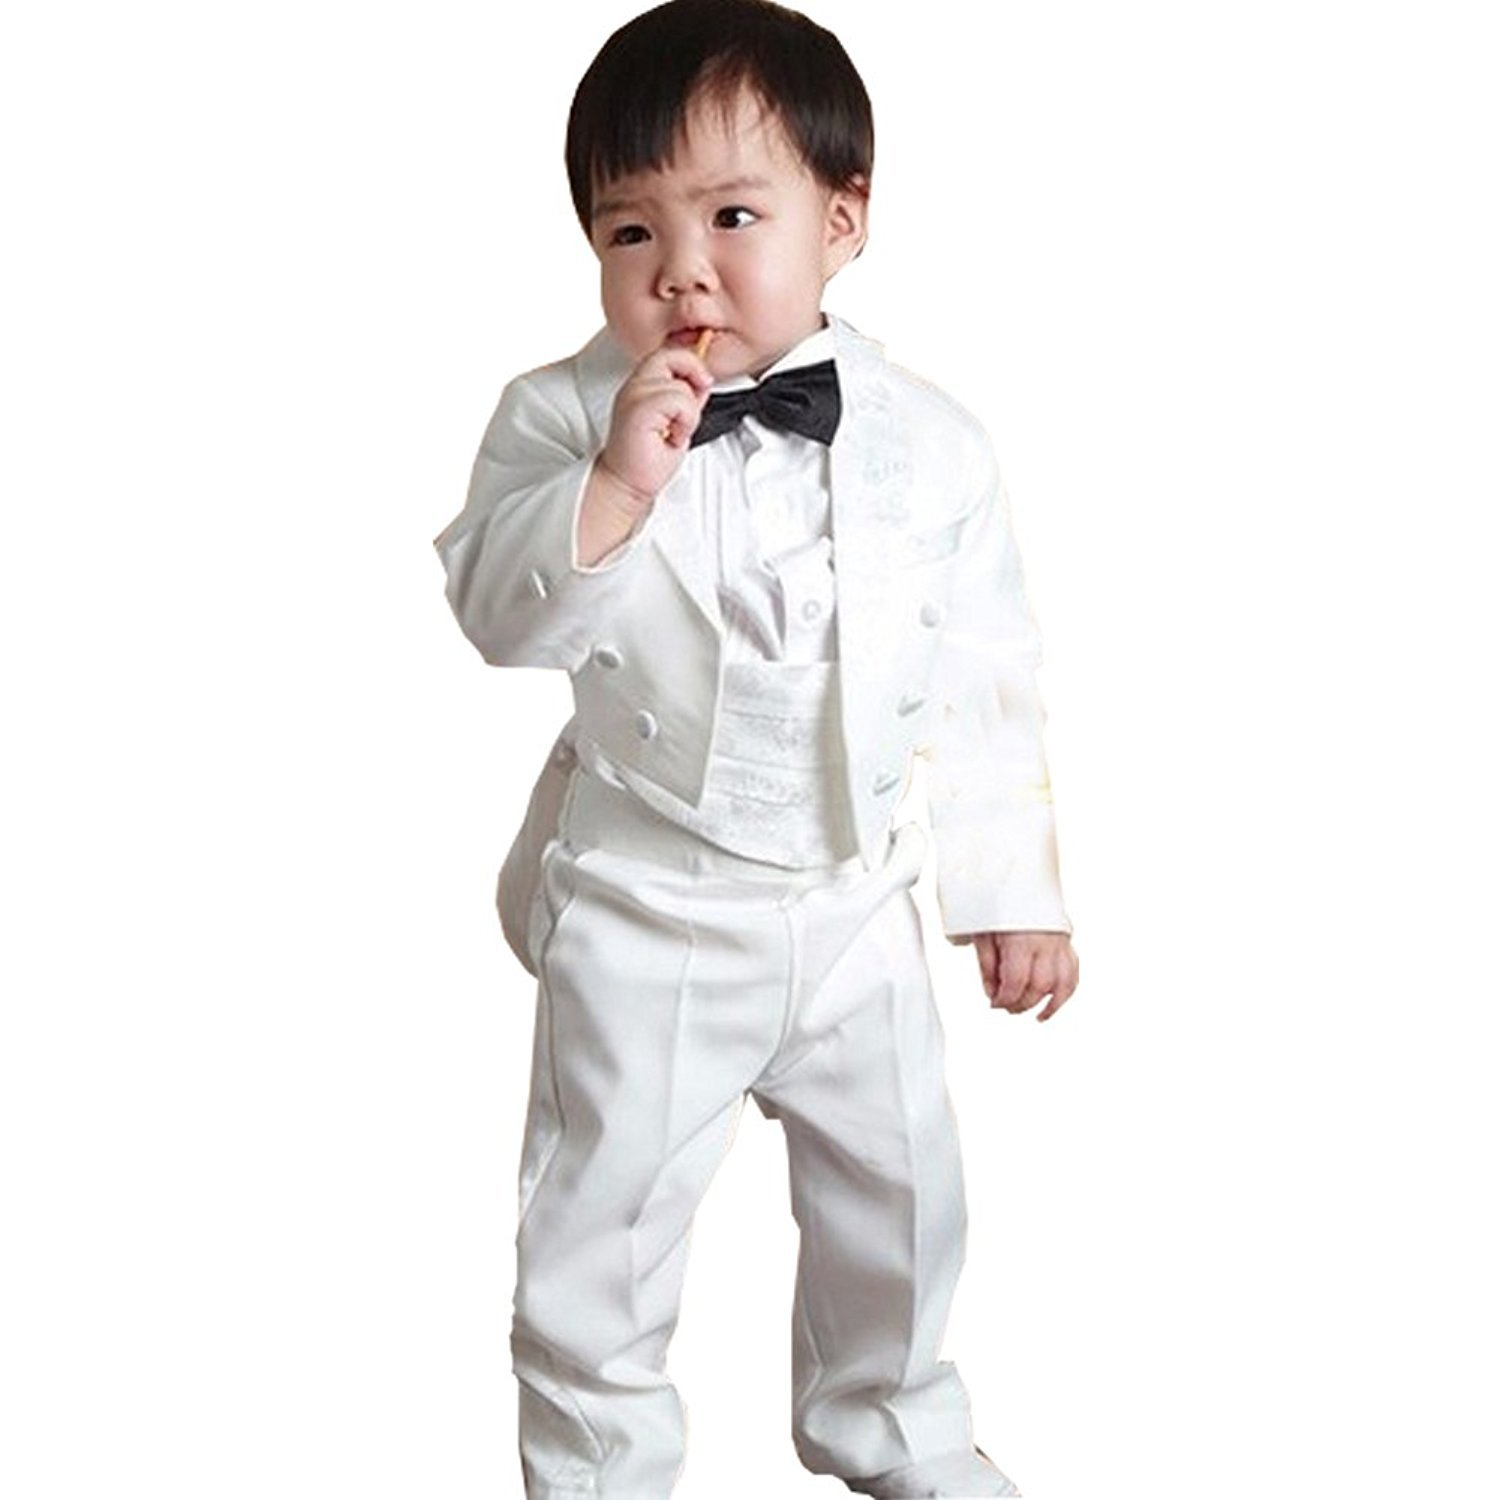 GSCH Boy's 5Pcs Formal Tuxedo Suit With Tail Jacket Shirt Vest Pants and Bowtie china